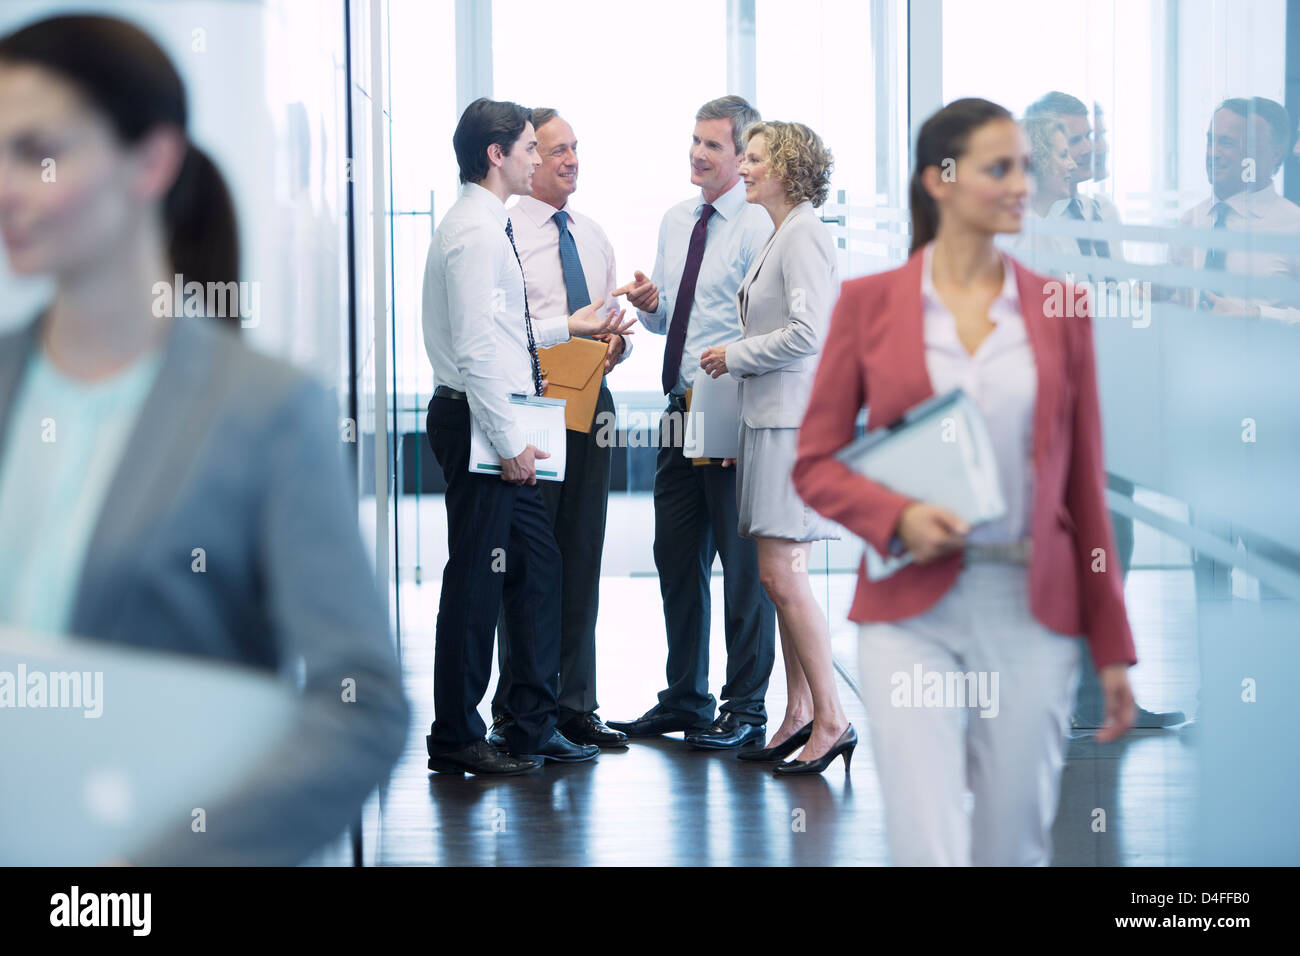 Business people talking in office hallway - Stock Image